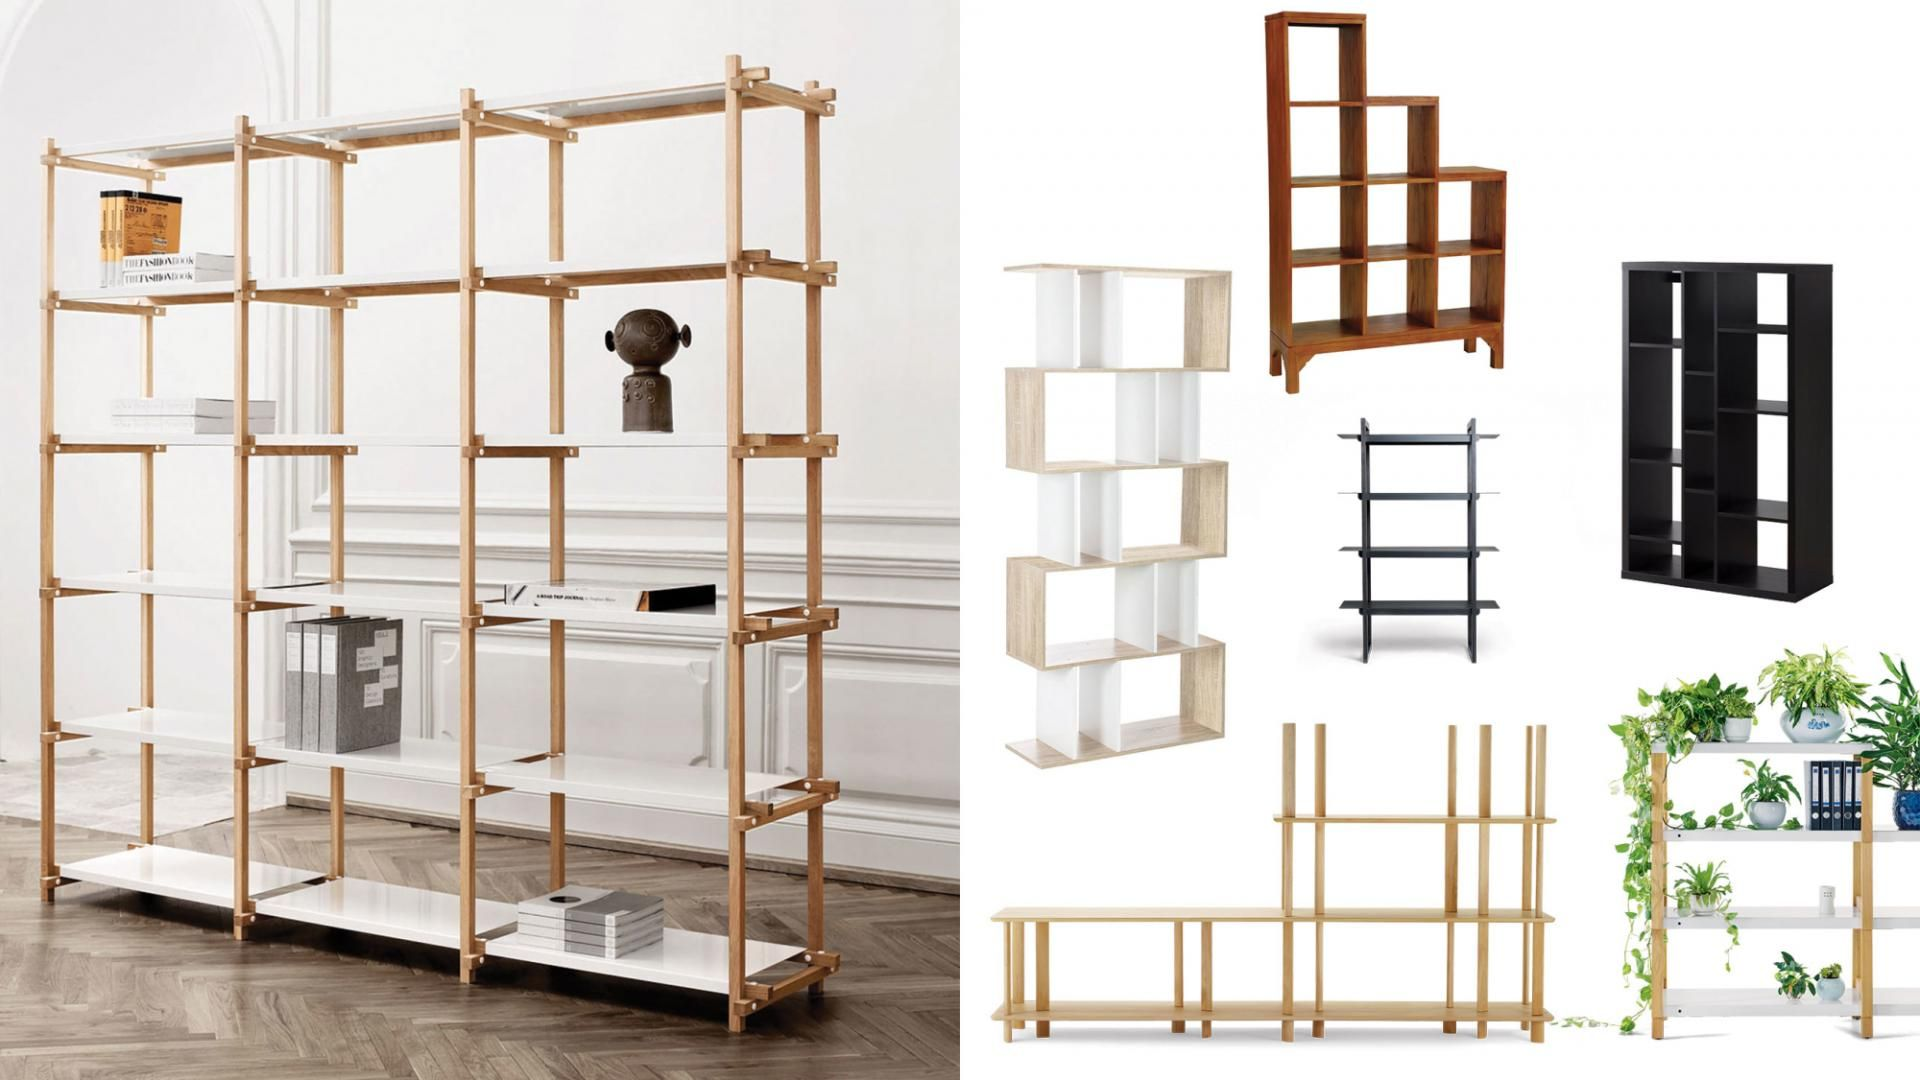 7 Of The Best Free-standing Shelves   Shelves & Storage In 2019